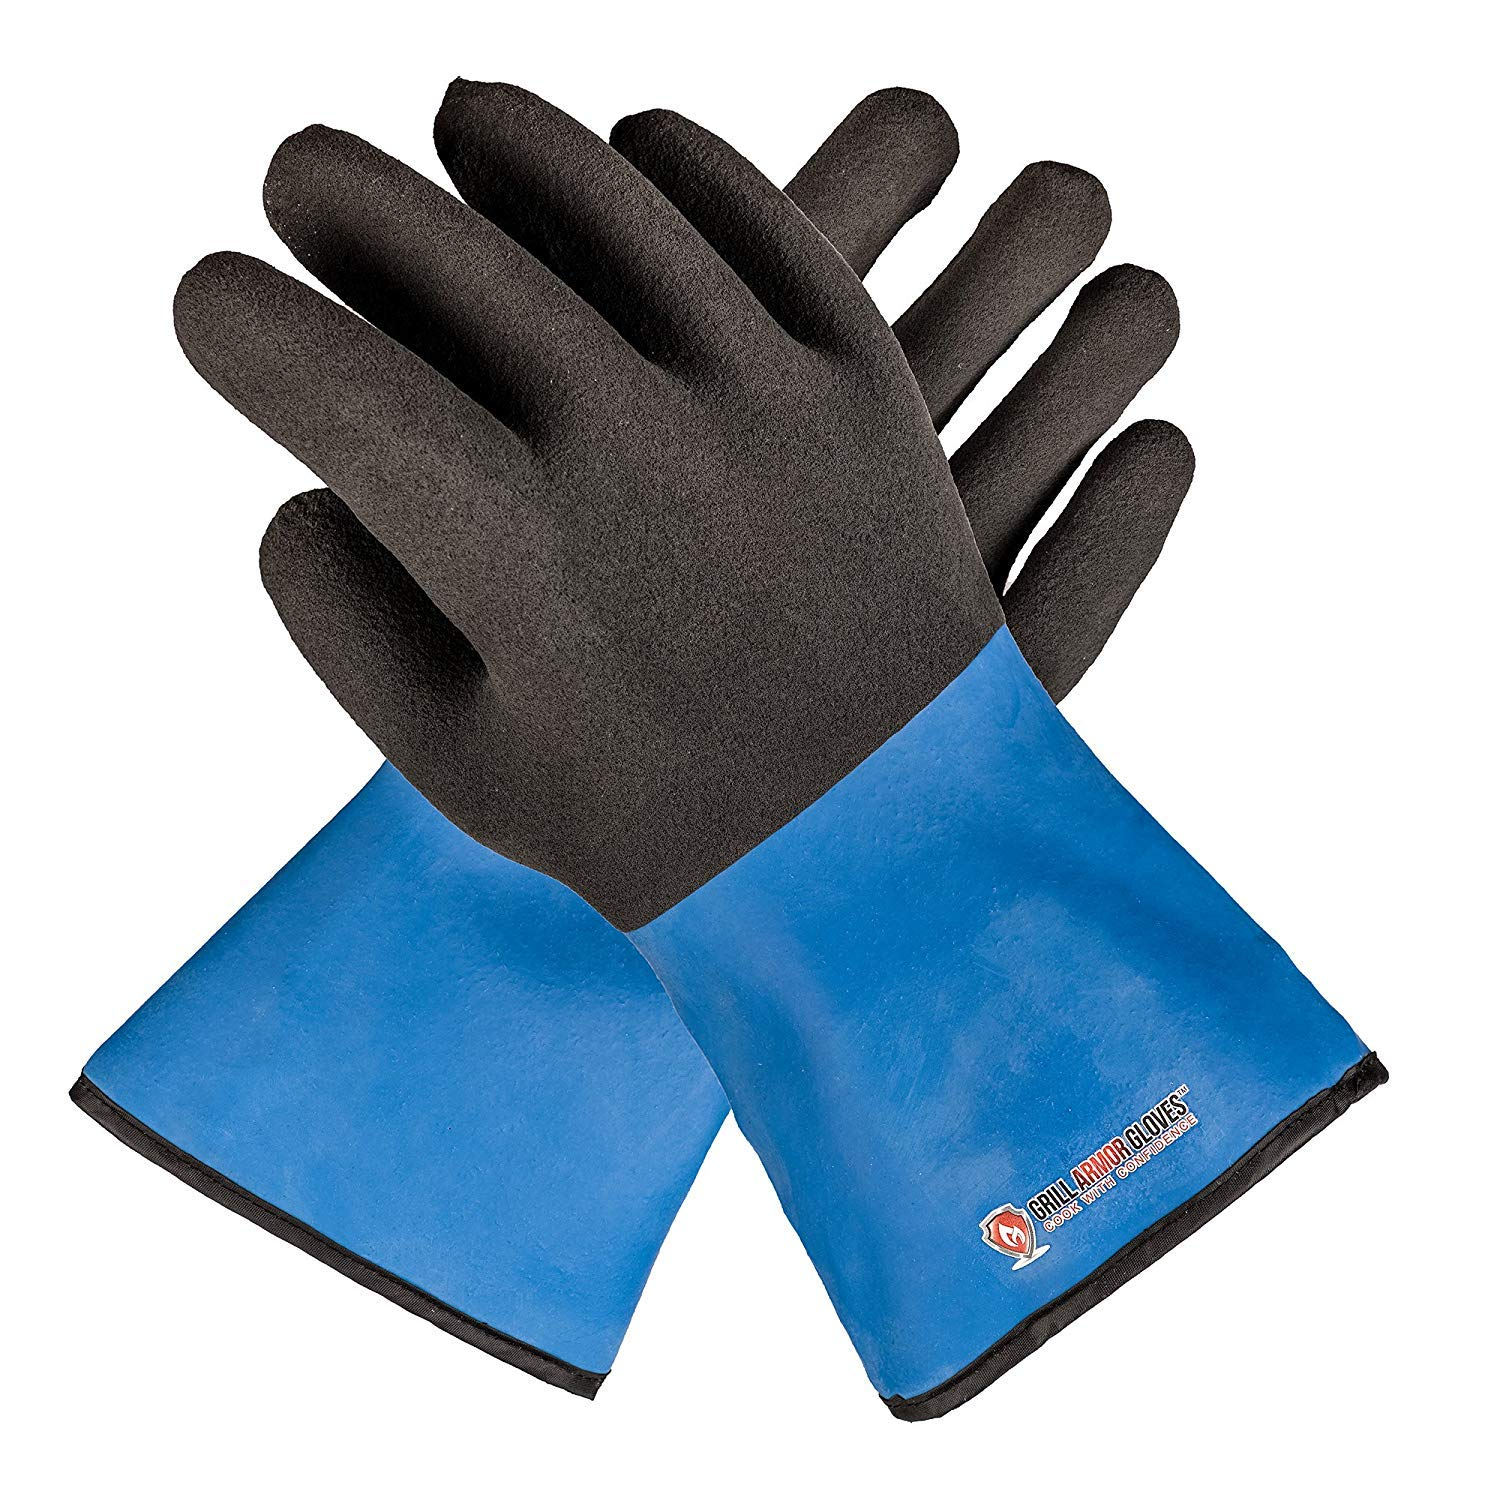 Grill Armor Resistant Waterproof Gloves